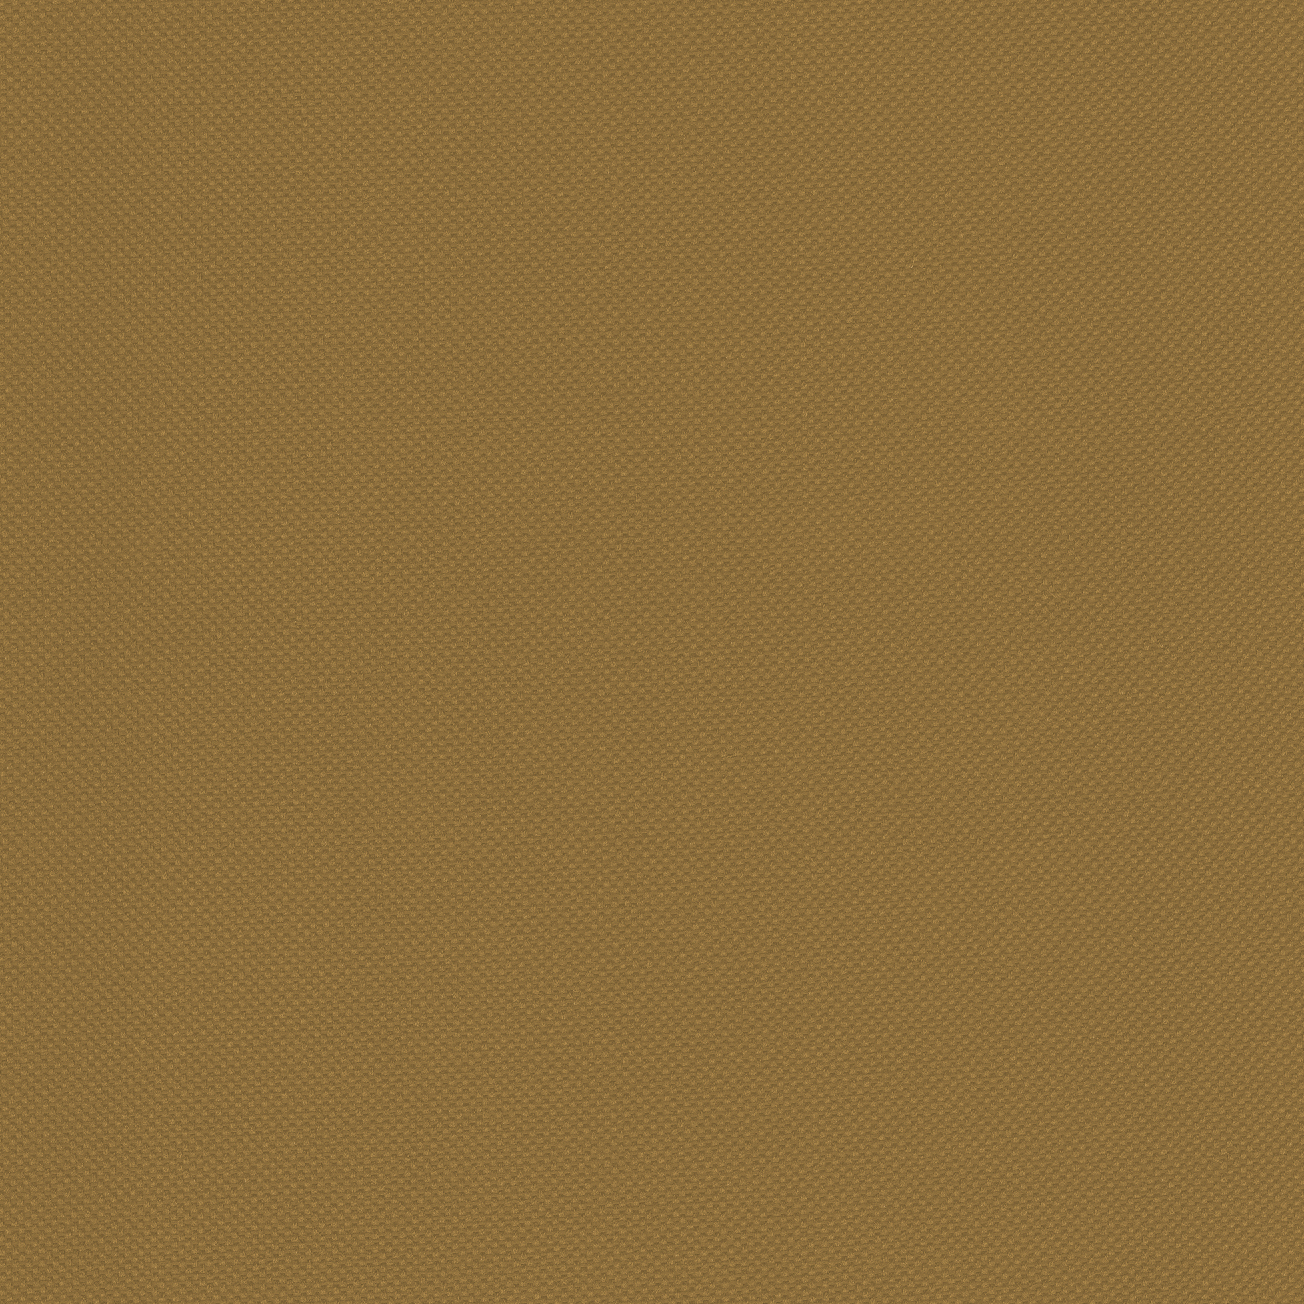 SHASON TEXTILE PRO TUFF OUTDOOR FABRIC, TAN. (By The Yard)